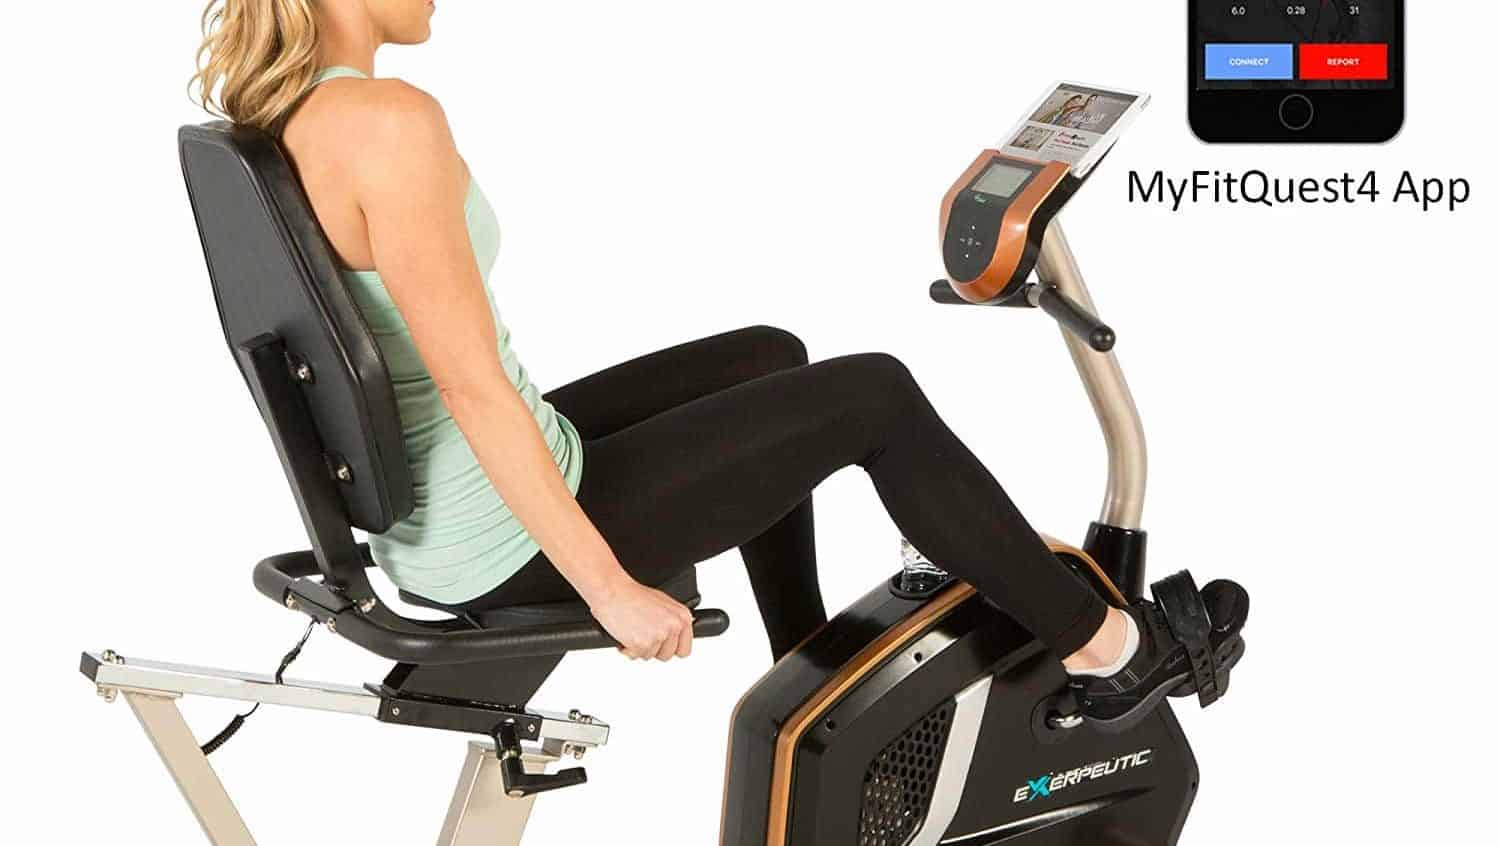 Exerpeutic Gold 975 Recumbent Exercise Bike Review